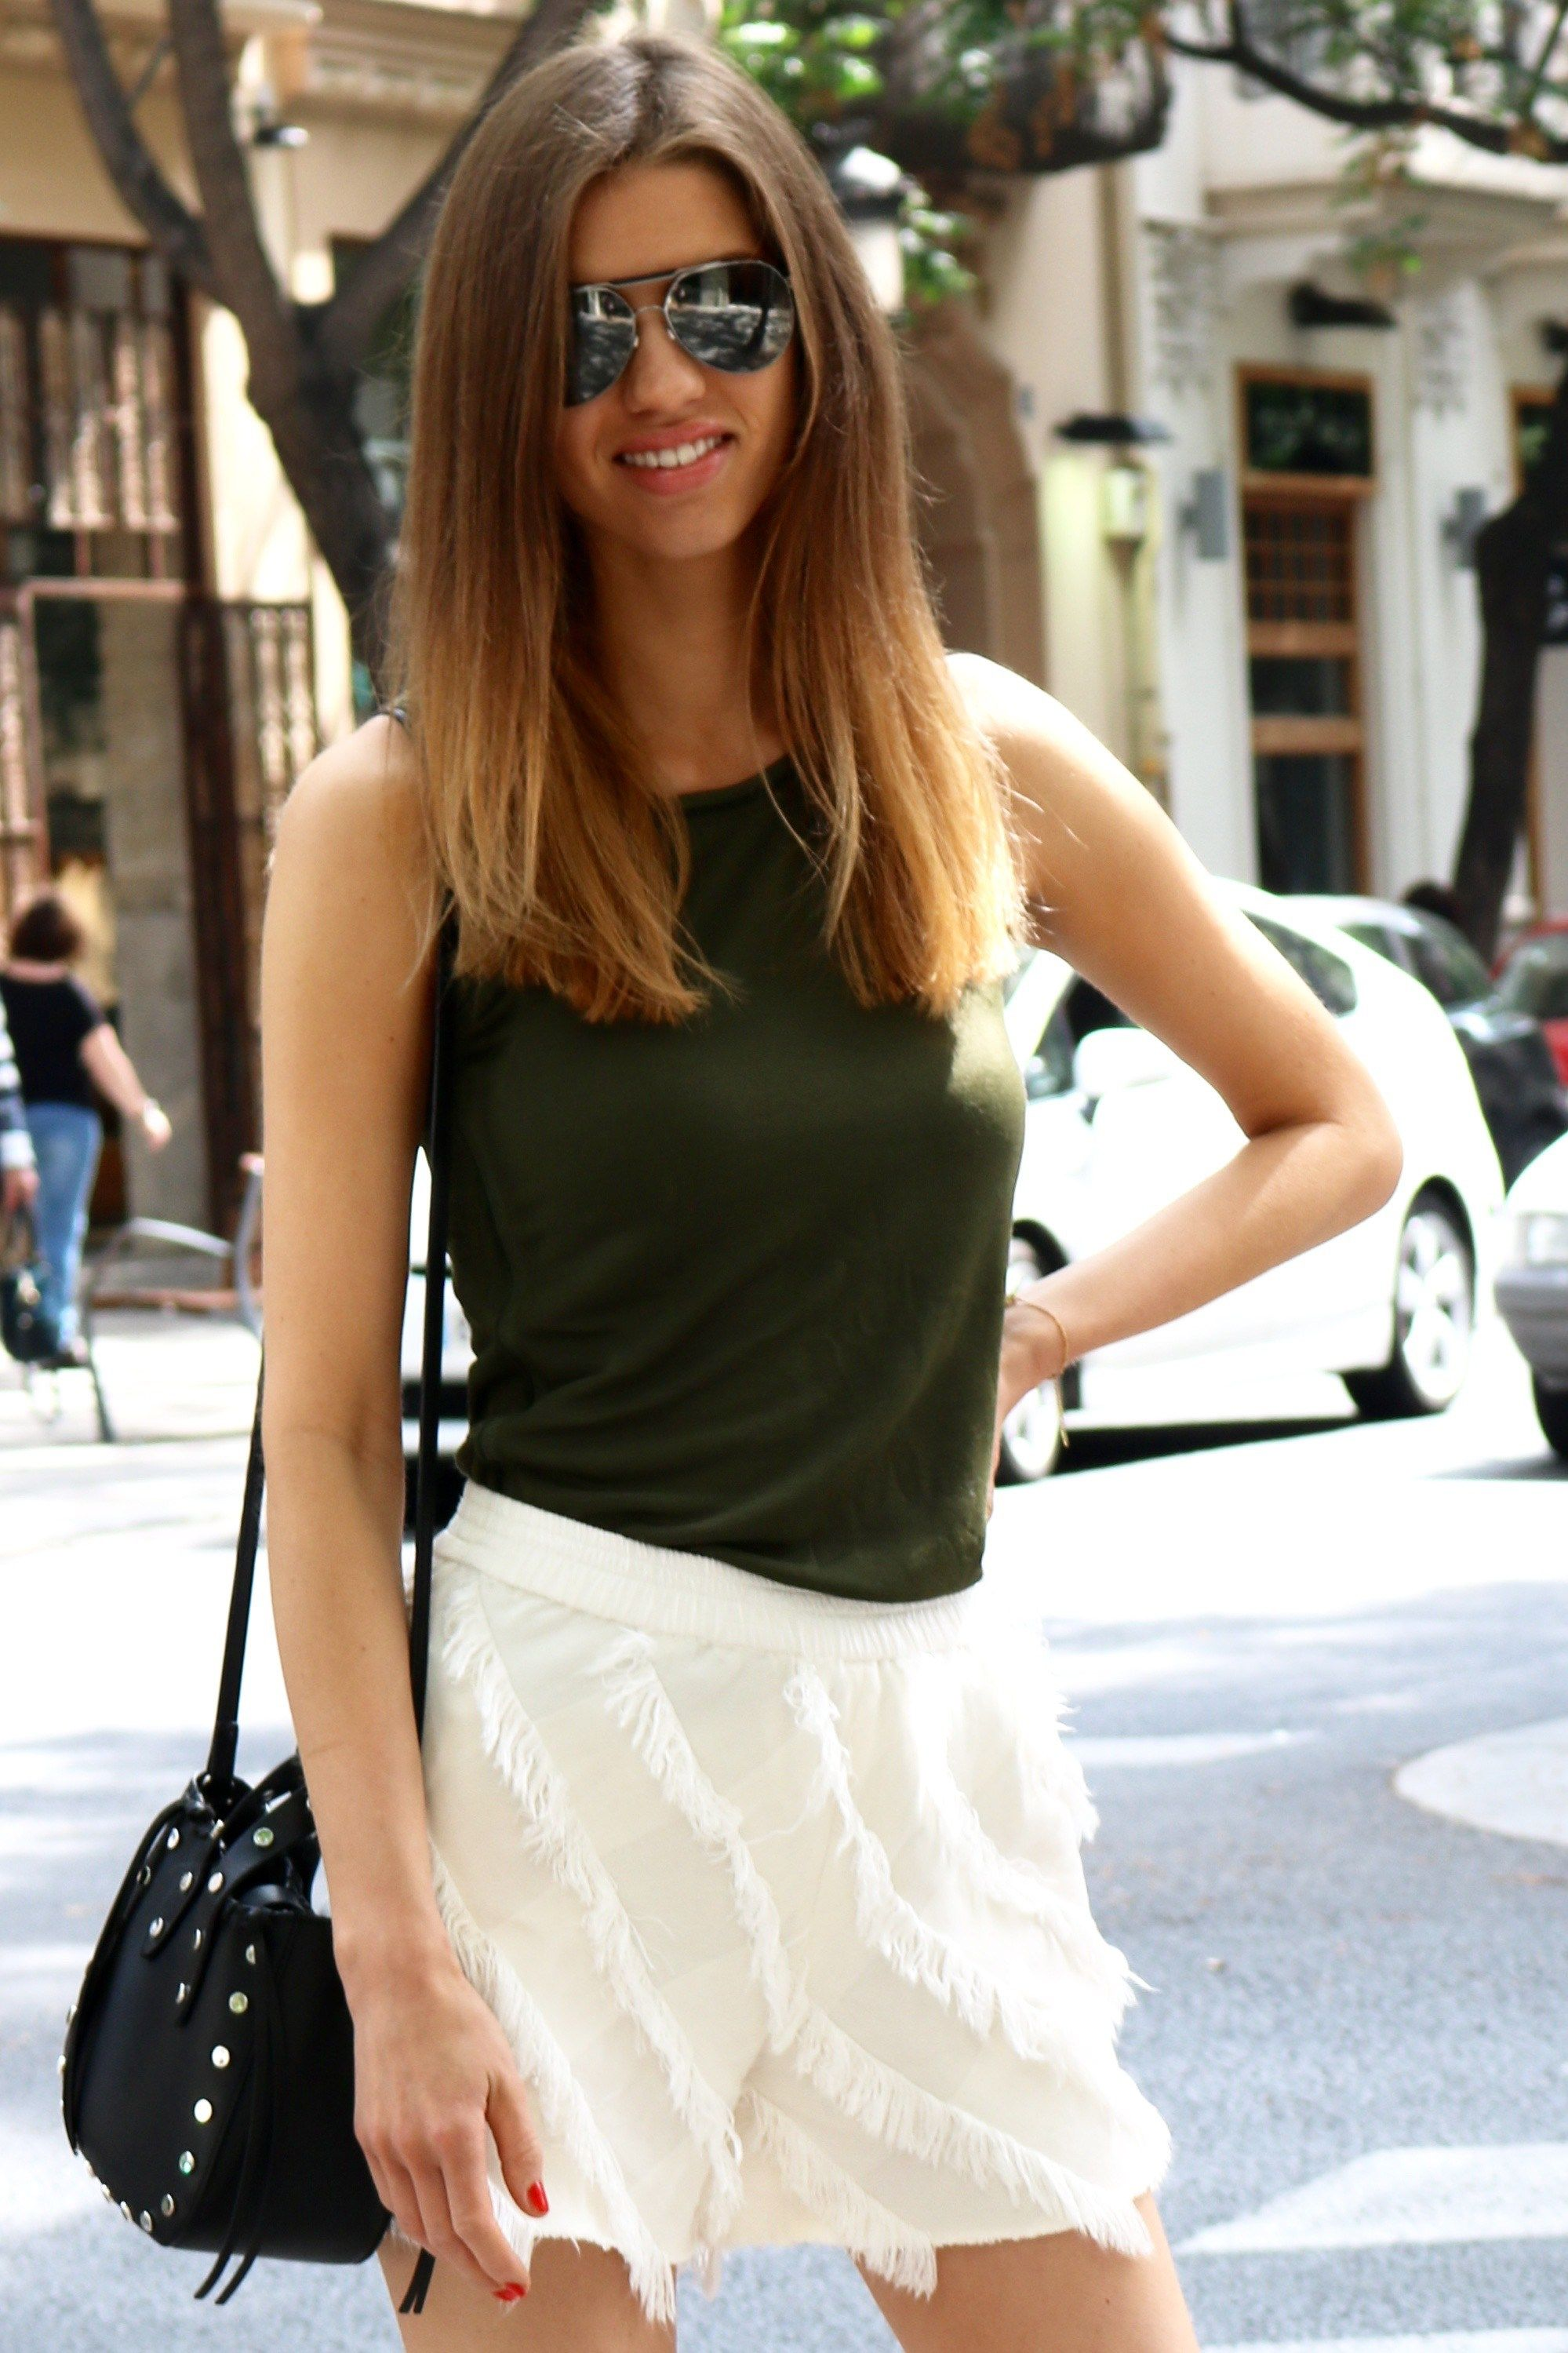 FASHION SHOULD BE FUN #ootd - wearing #white frayed shorts and #khkai tank from Sandro Paris! more here - http://www.theblogness.com/fashion-should-be-fun/